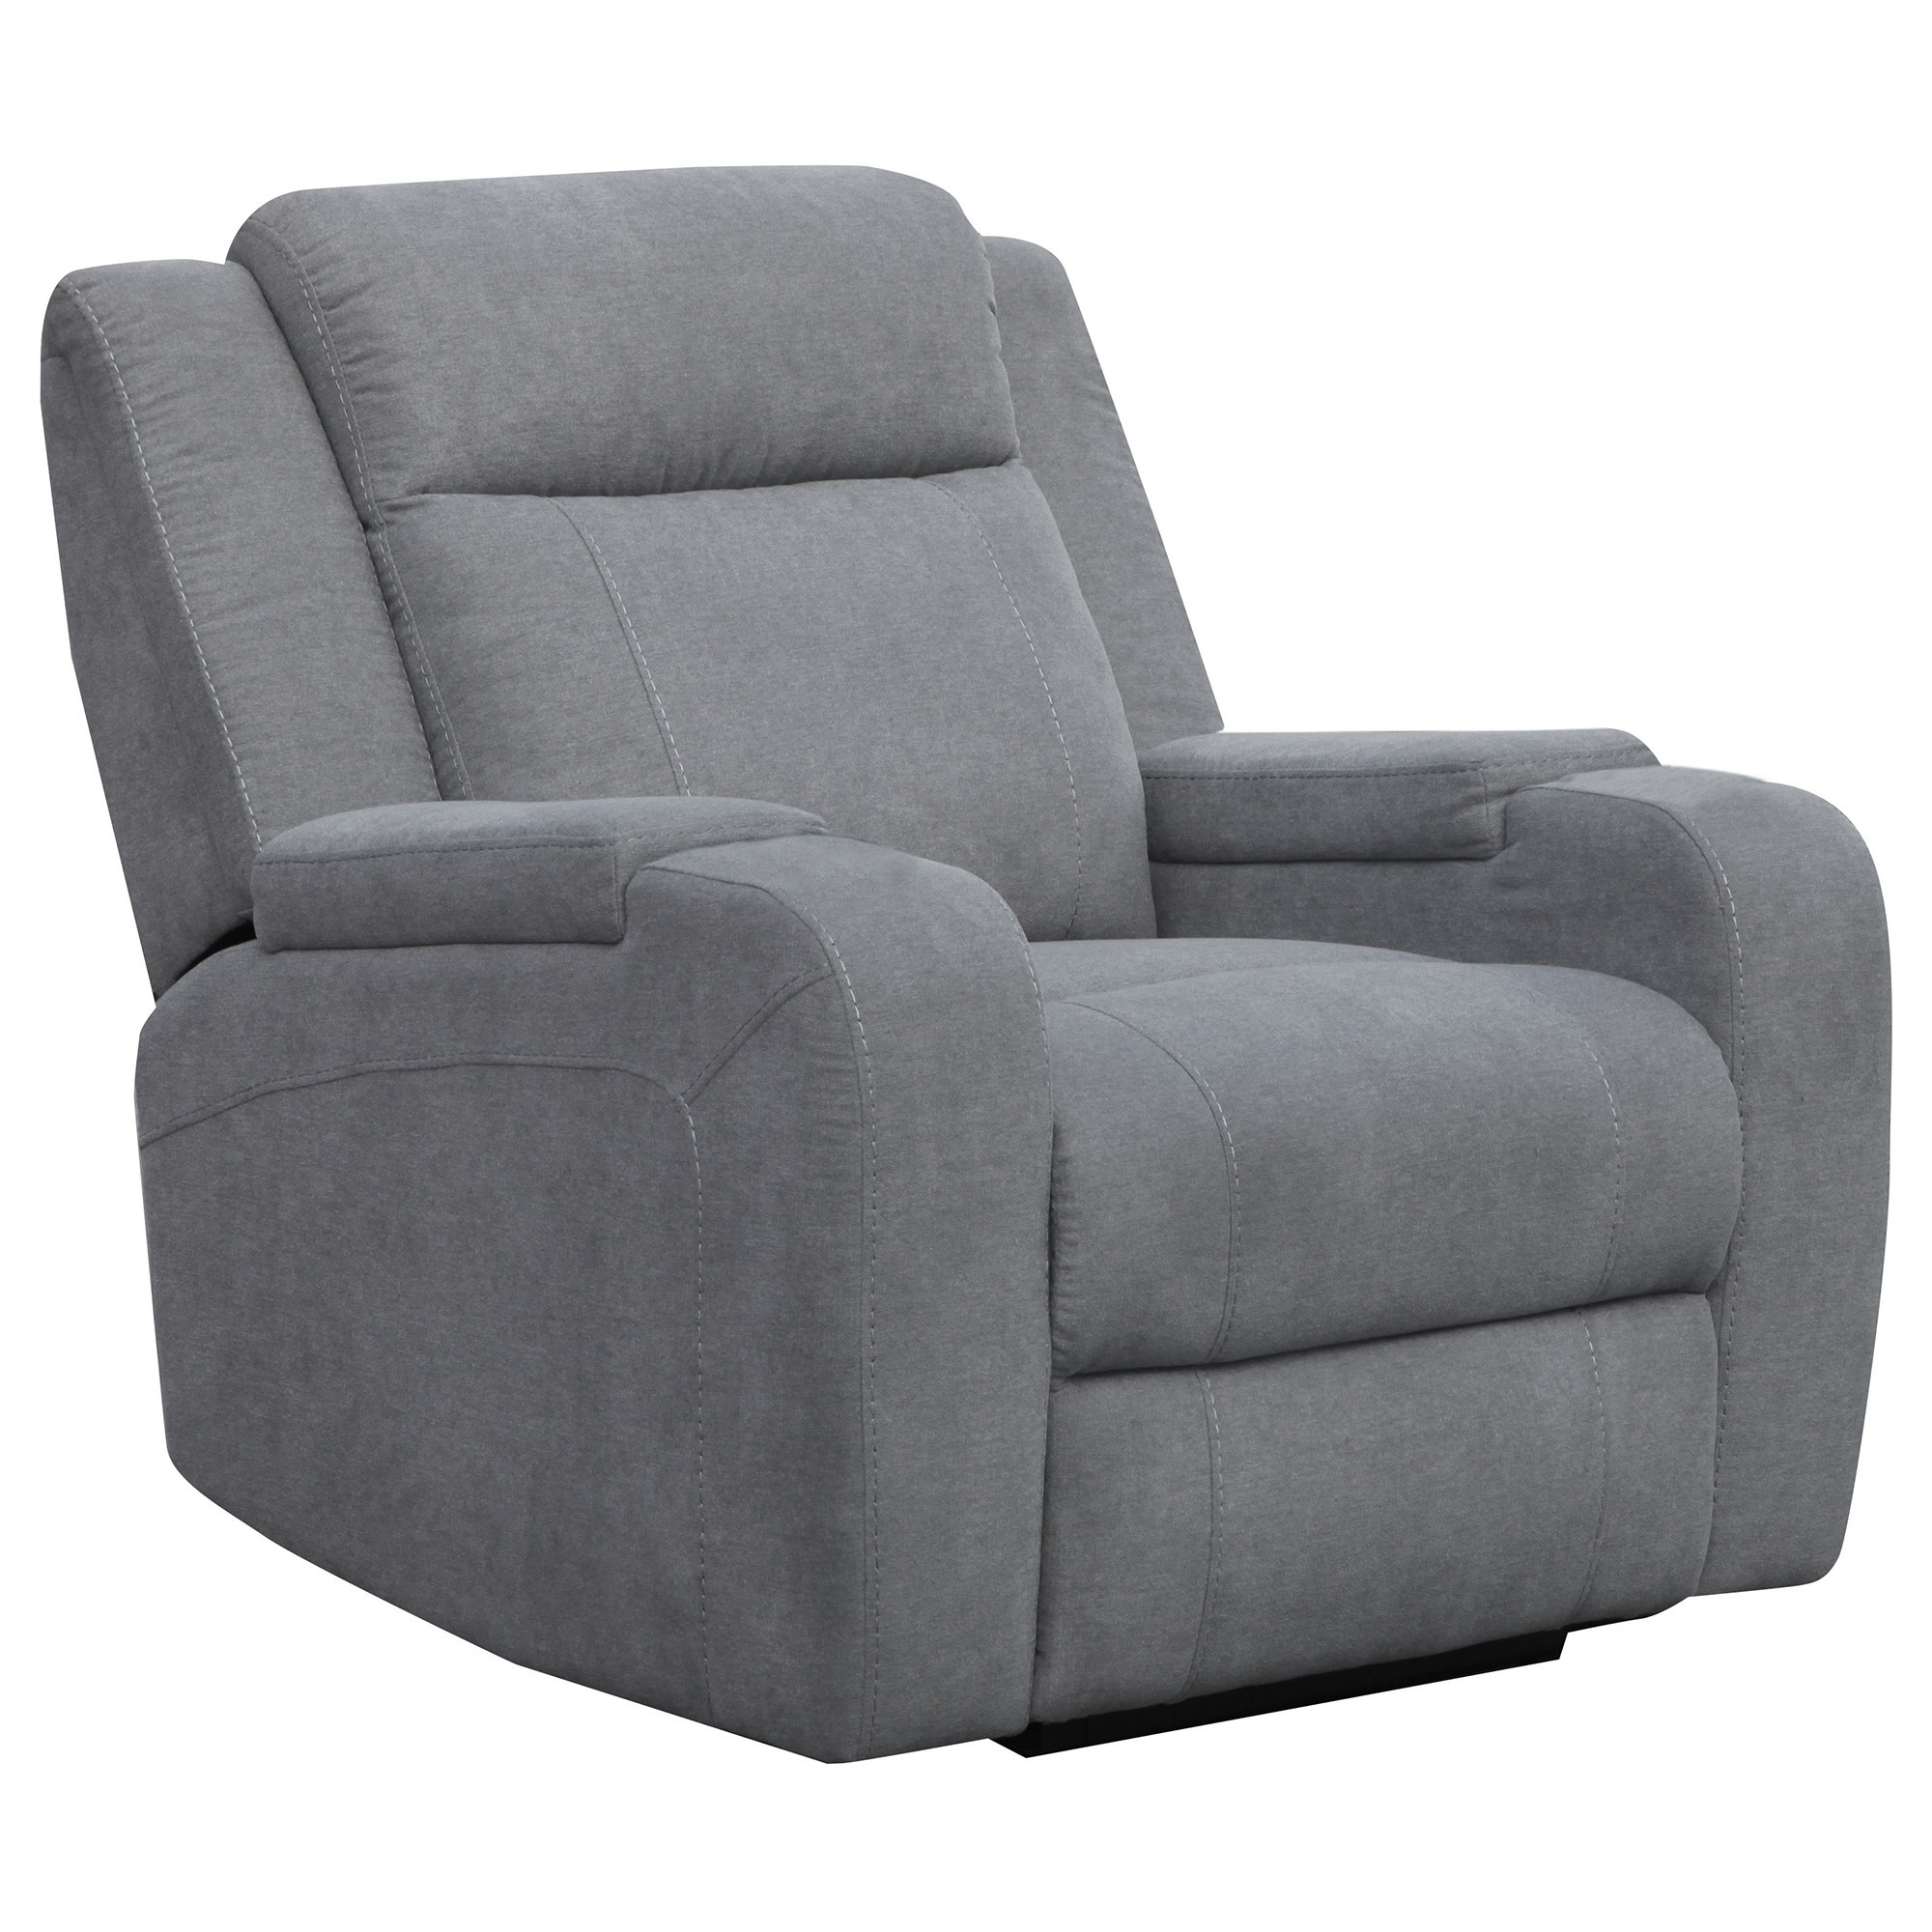 Renton Linen Fabric Electric Recliner, Storm